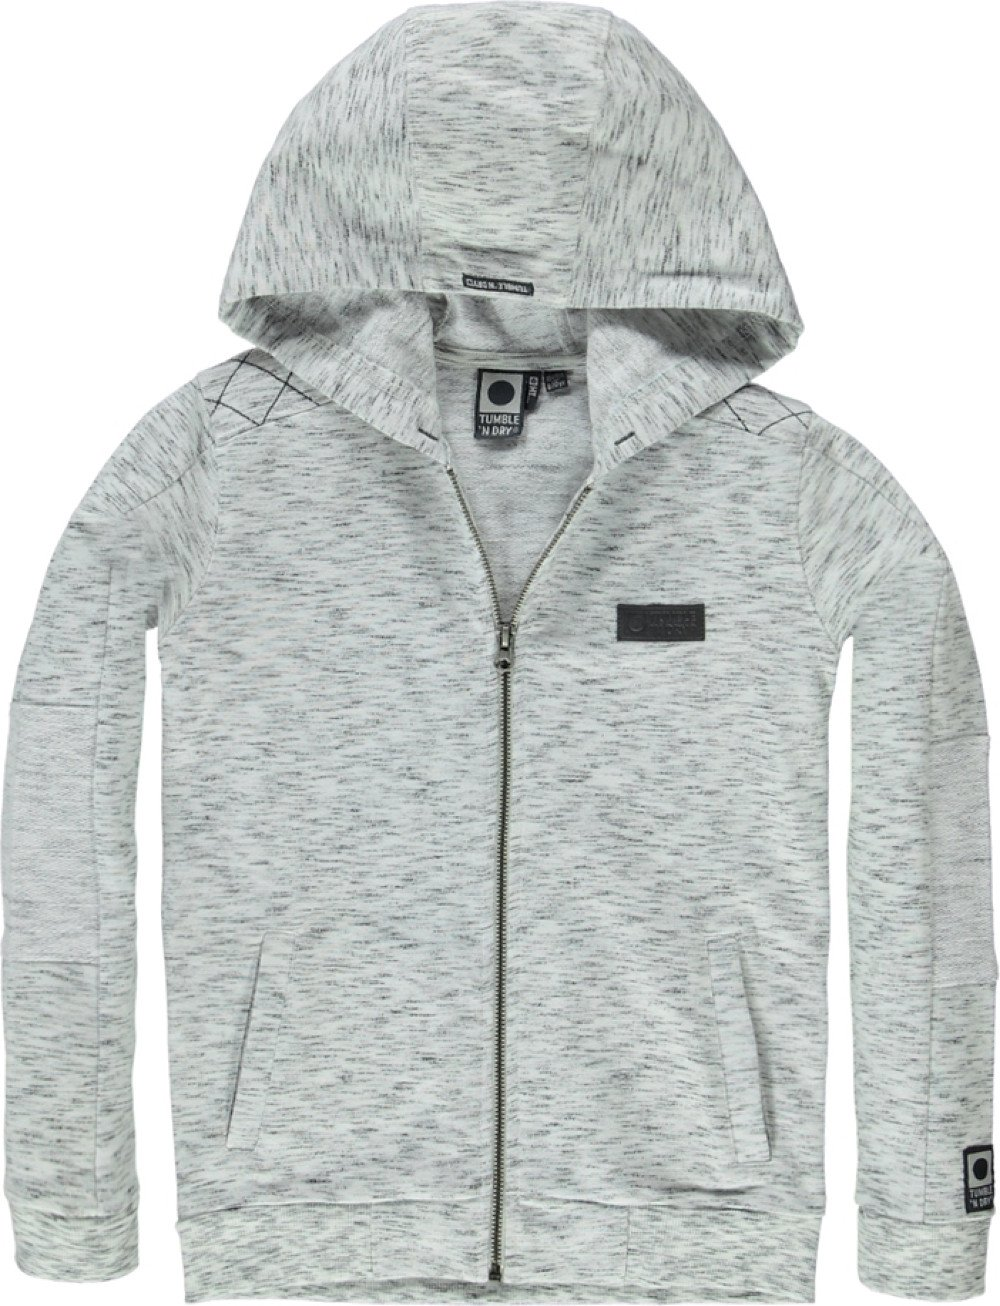 Tumble n Dry Junior Boys' Hooded Cardigan Meart, Sizes 6-16 (16/176)